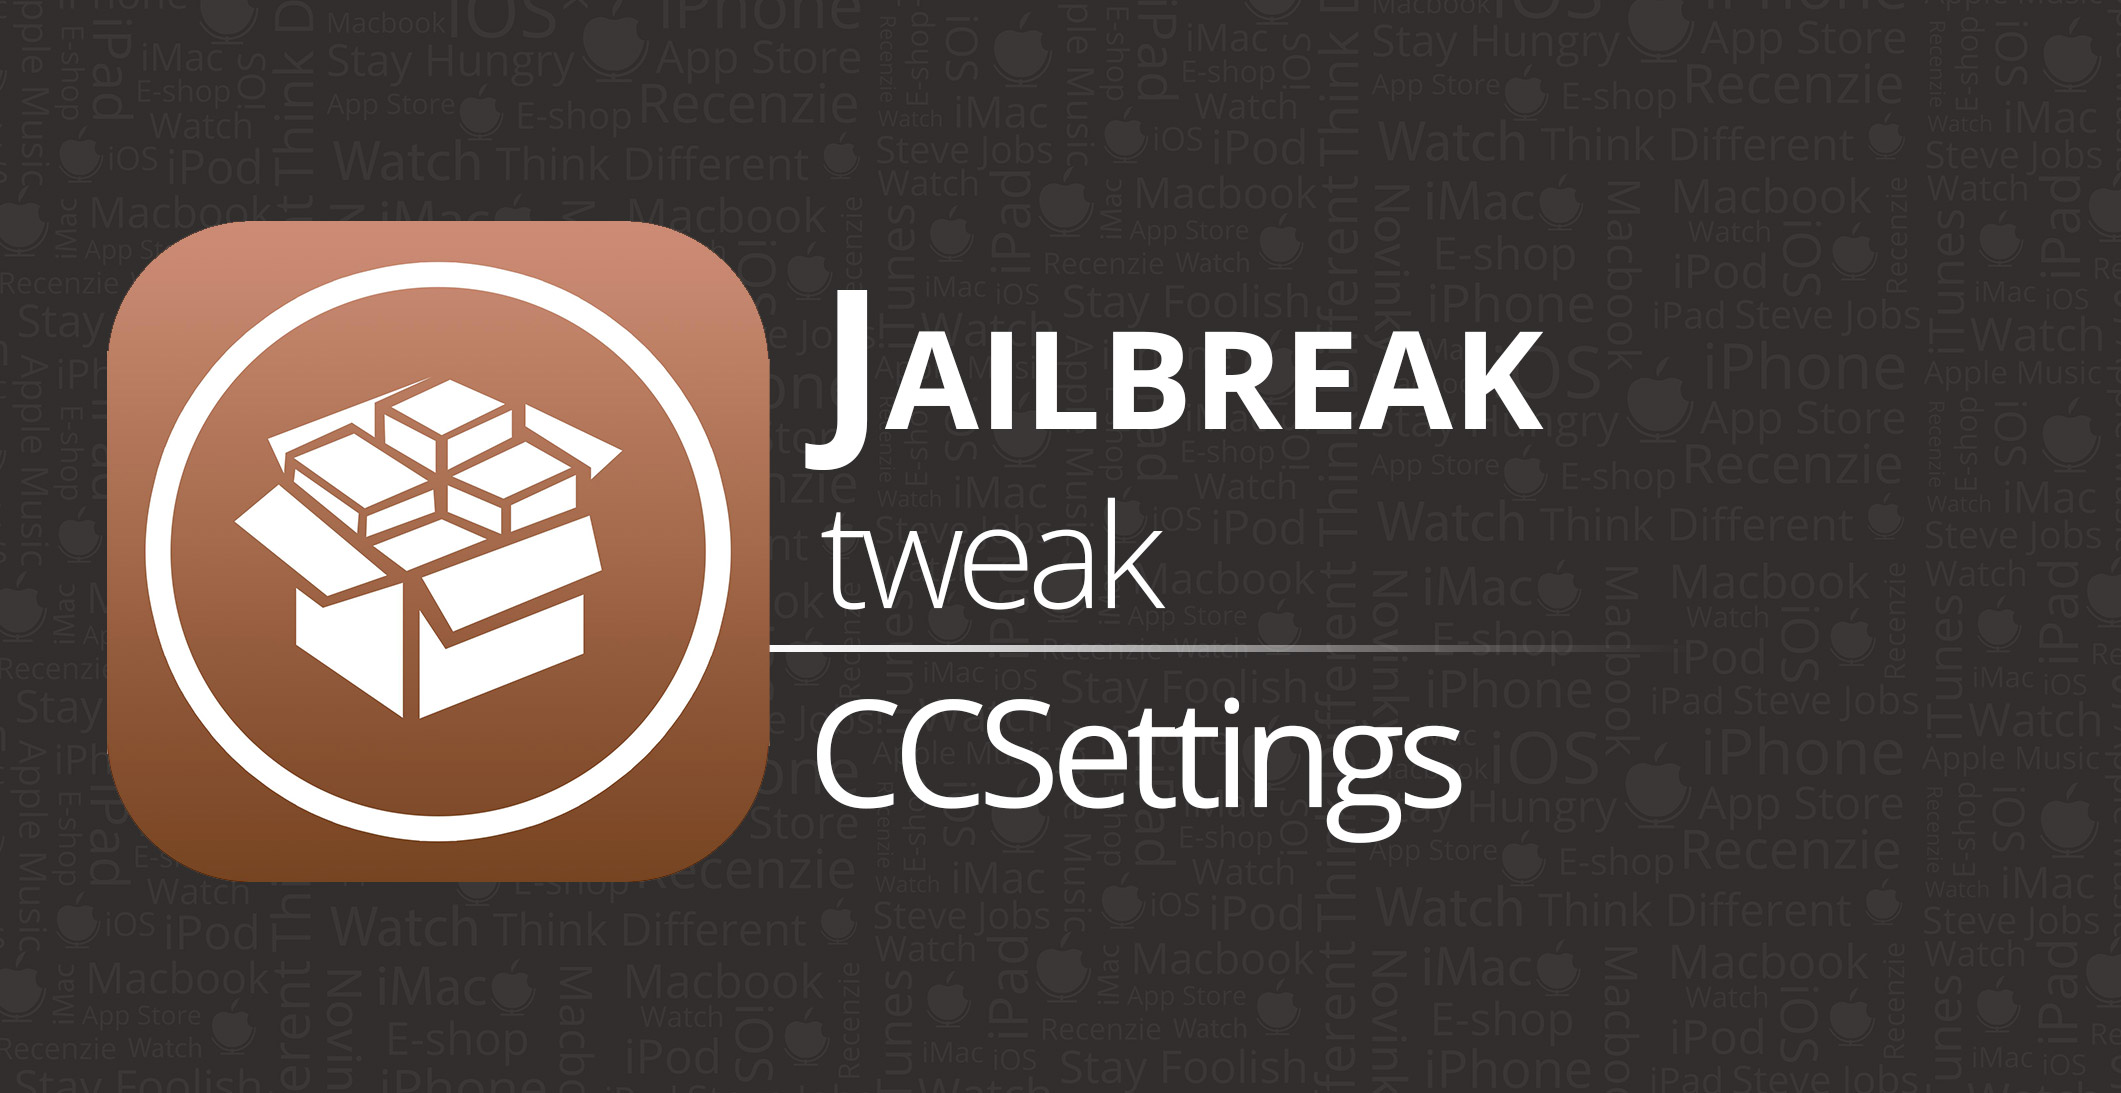 jailbreak-tweak-ccsettings-svetapple